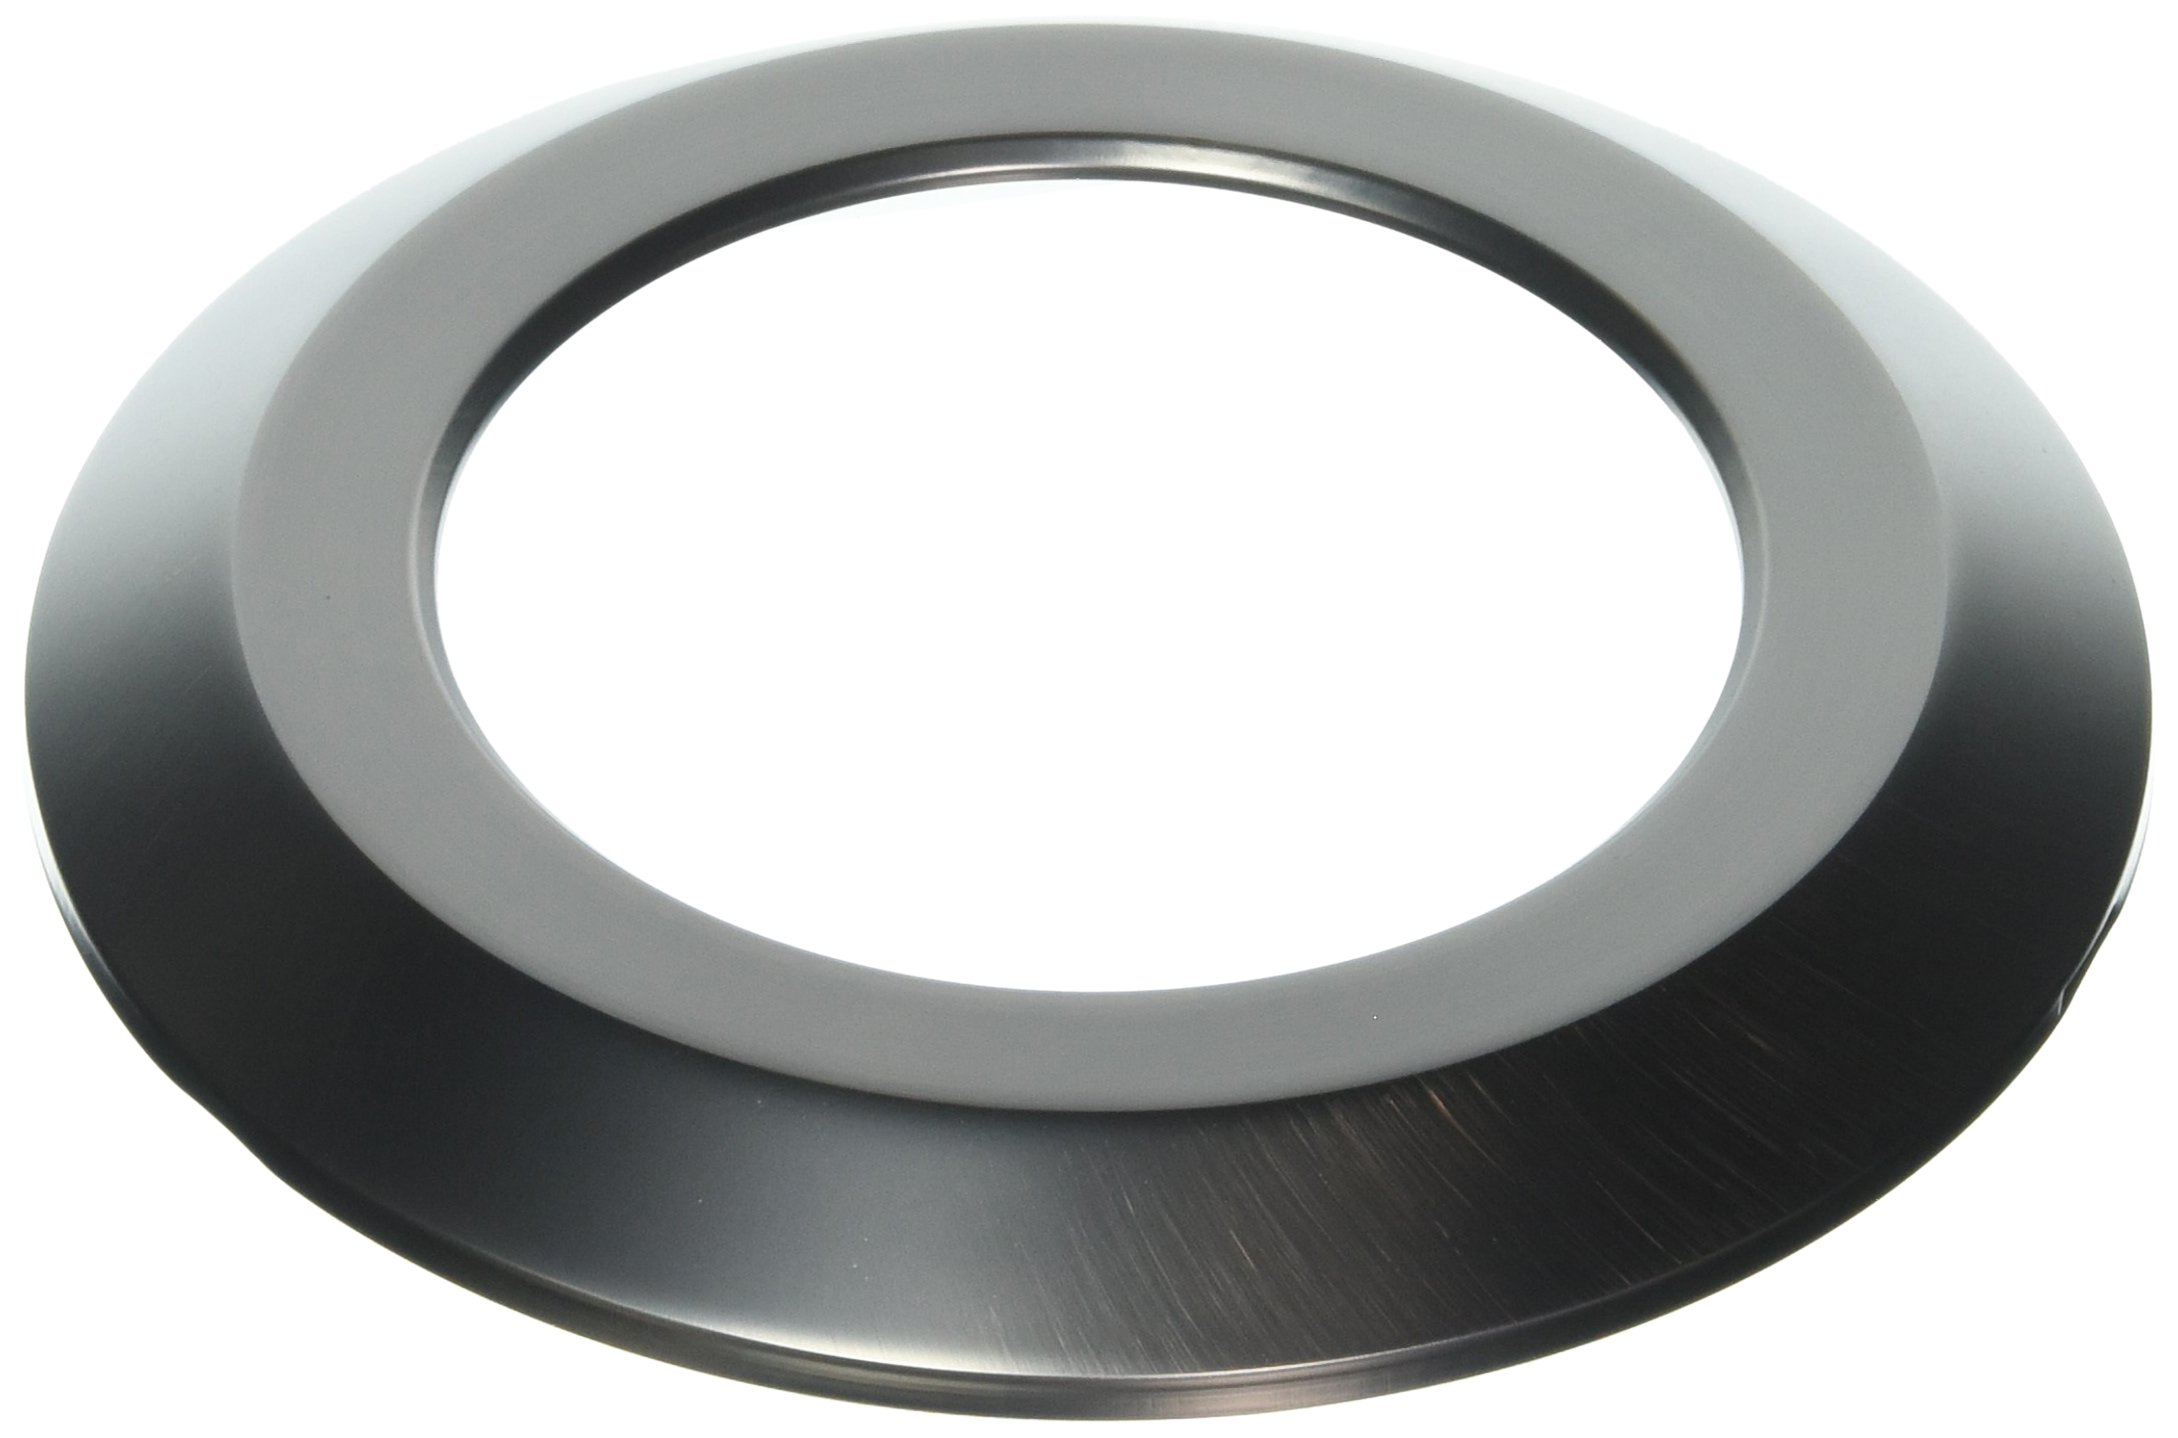 Halo SLD6TRMTBZ Trim Ring for SLD6 Series LED Disk Light, 6'', Tuscan Bronze